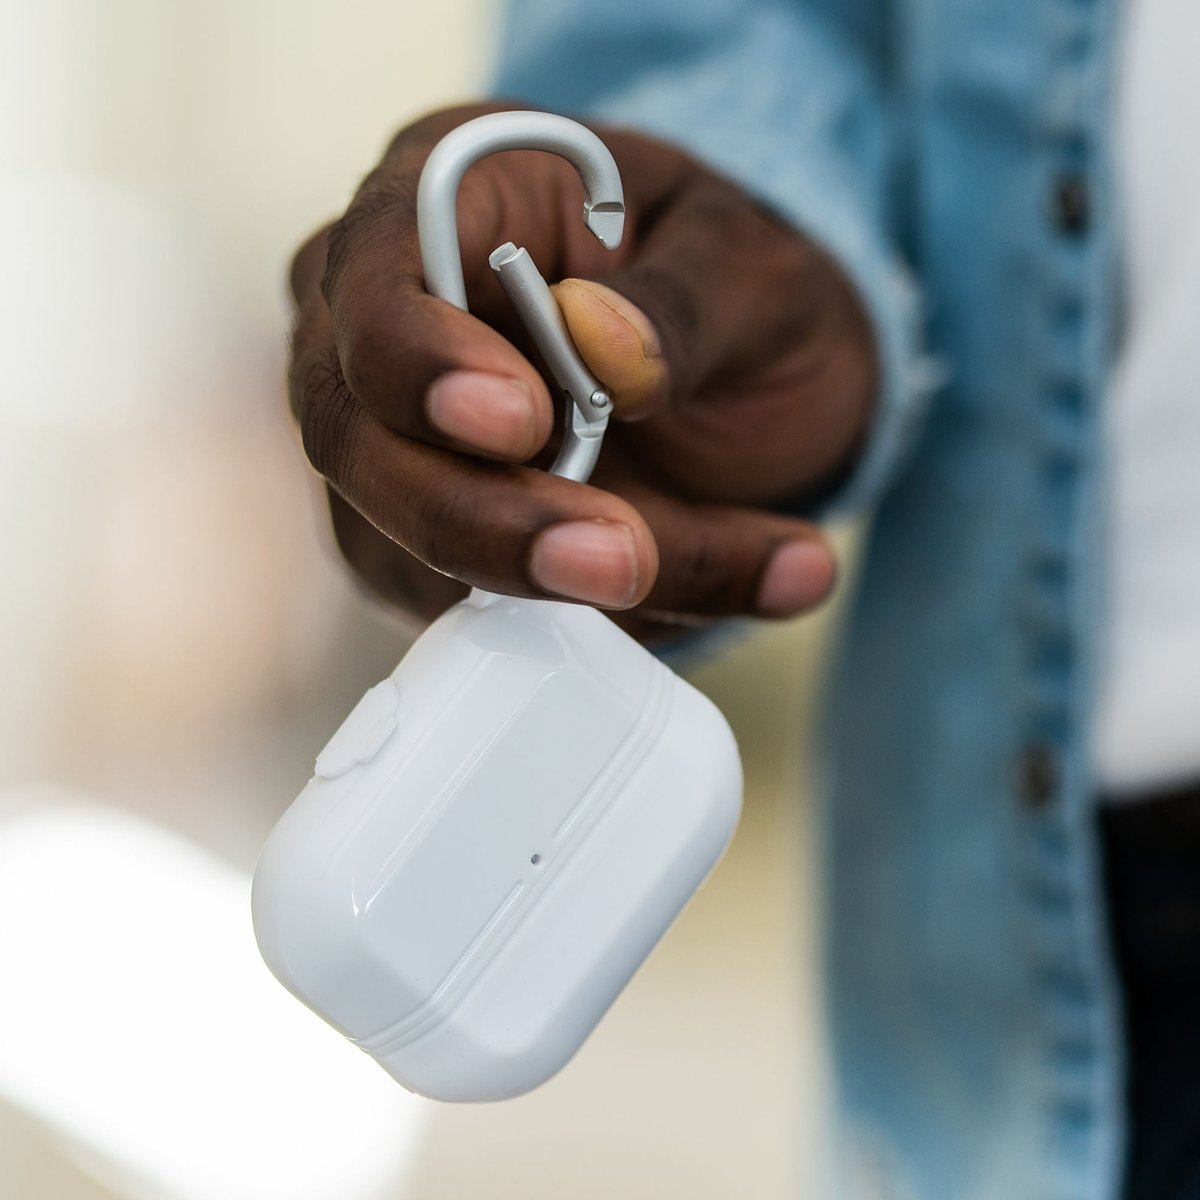 Stop losing those AirPods! Check out our Defense Journey AirPods case 🙌  https://t.co/OqyHUmkmu0 #defensejourney https://t.co/P1sGoSAhFL